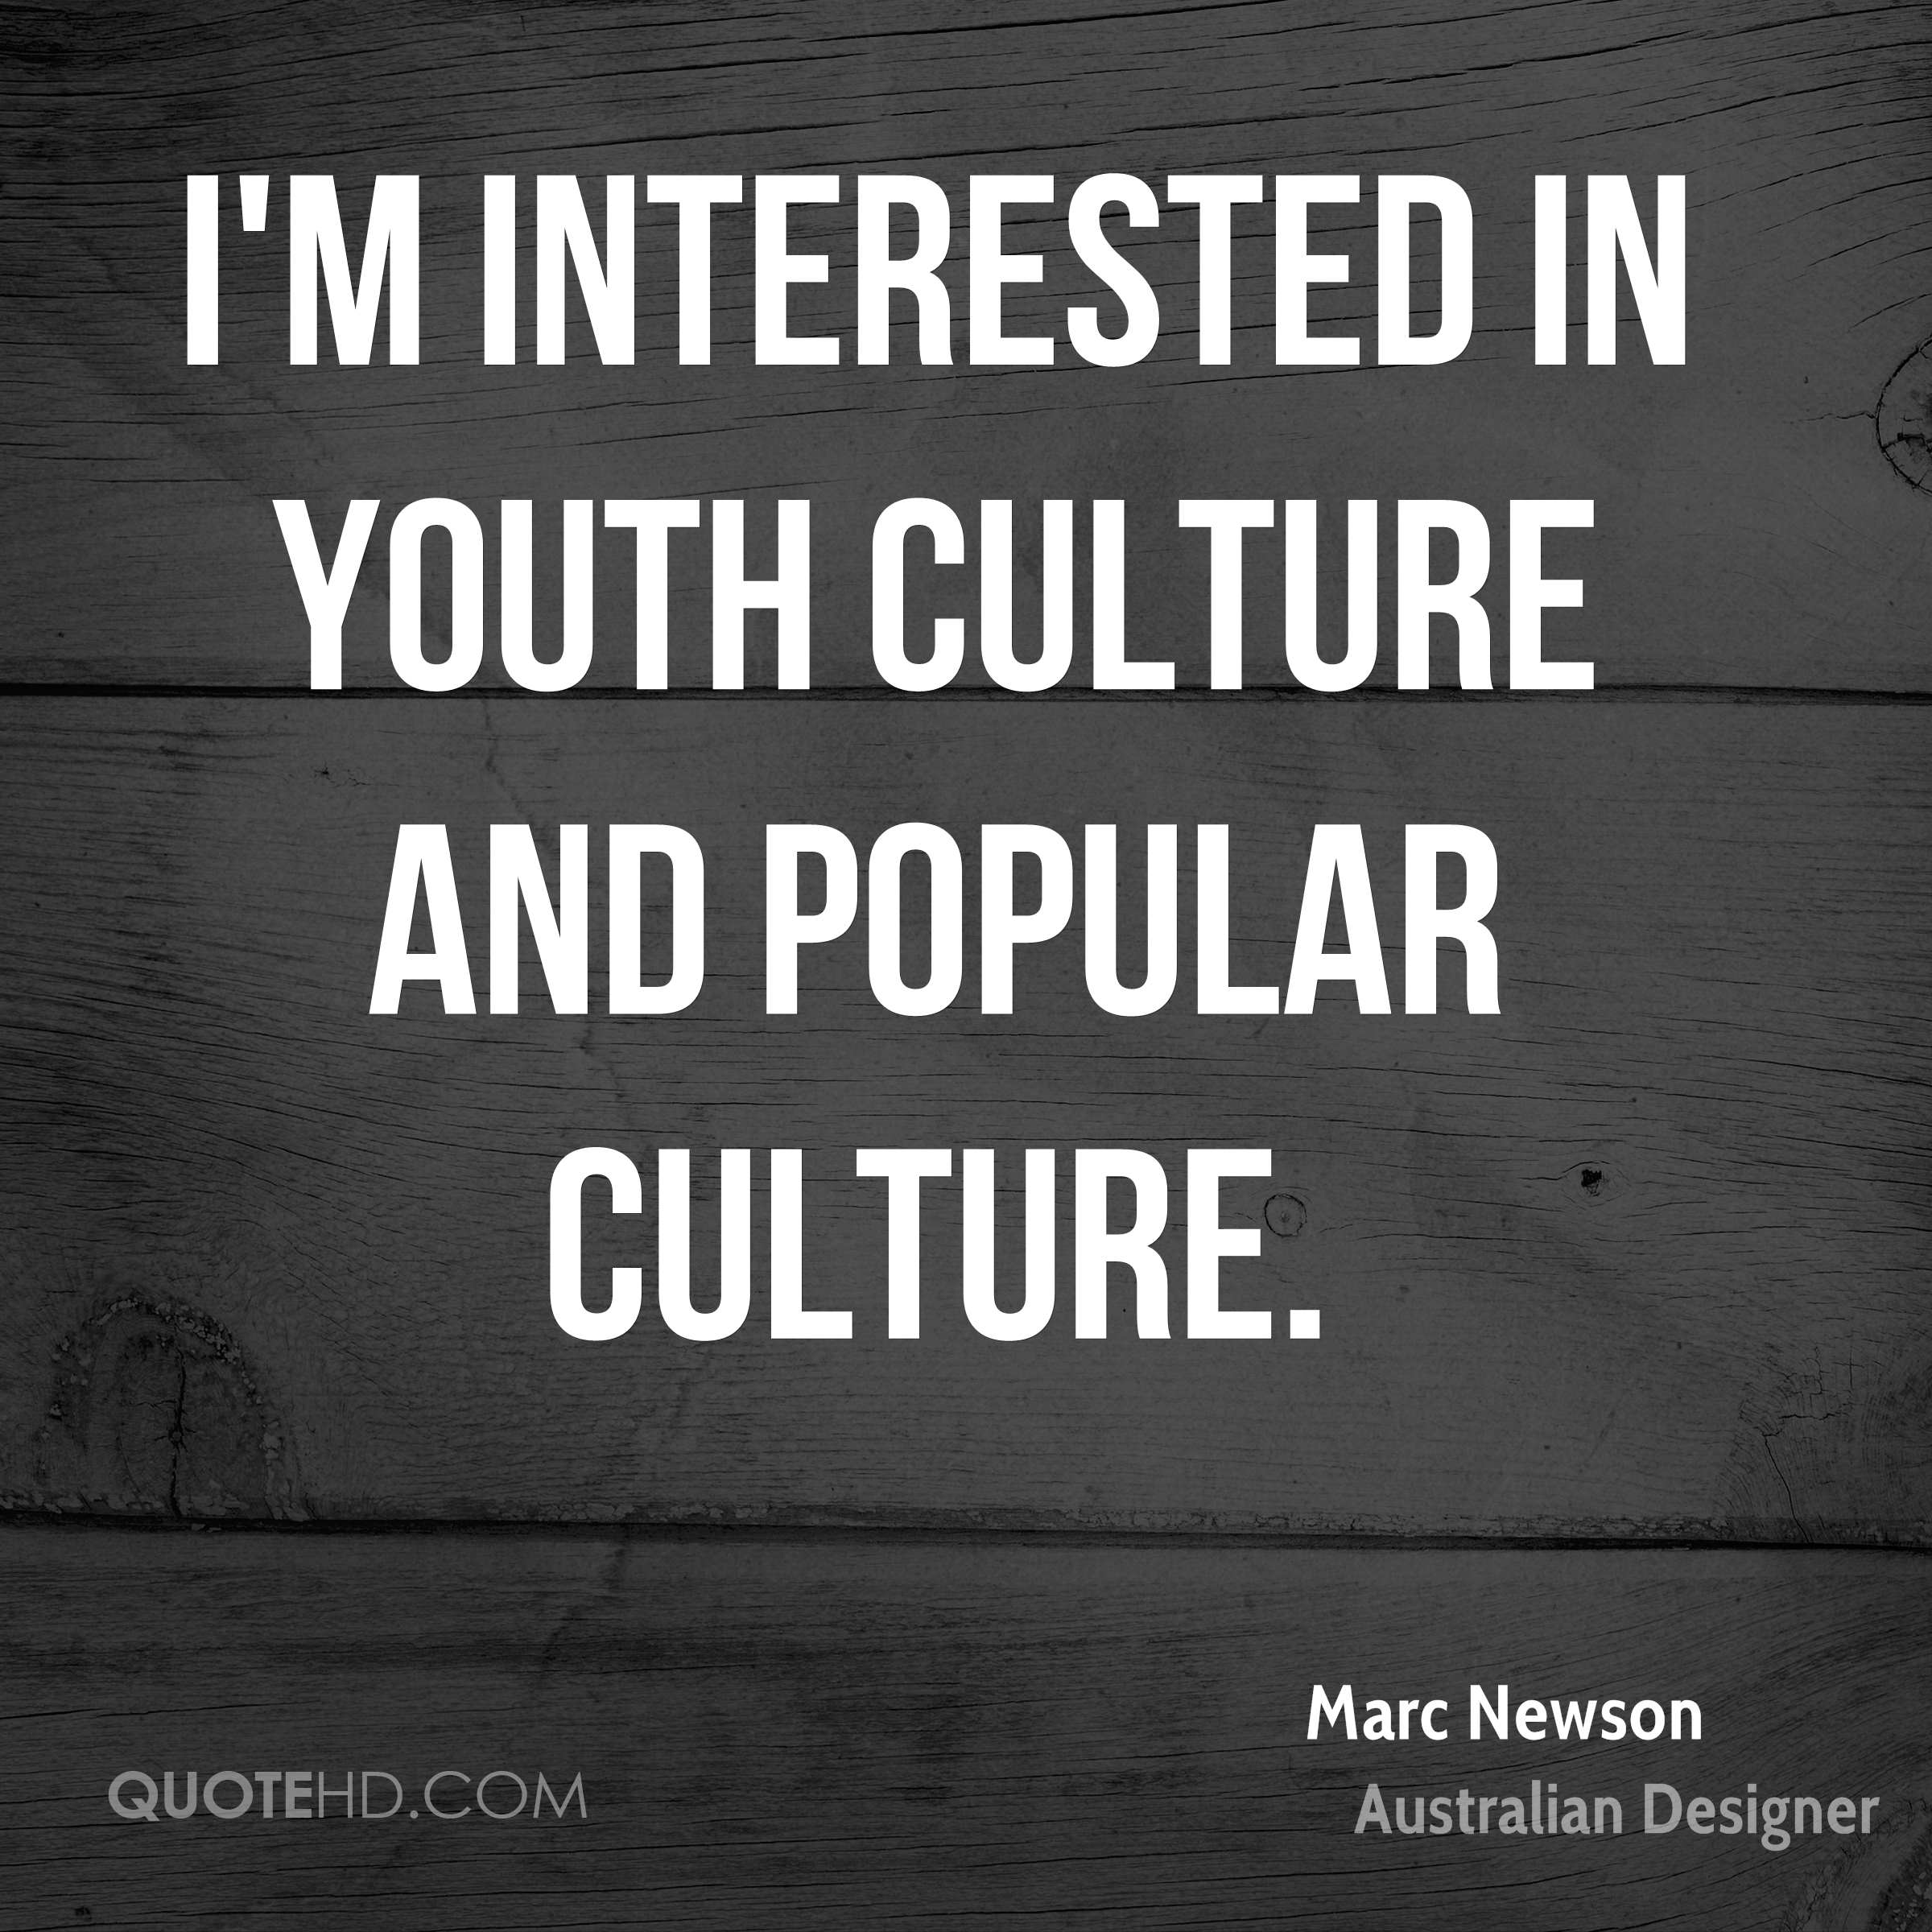 I'm interested in youth culture and popular culture.